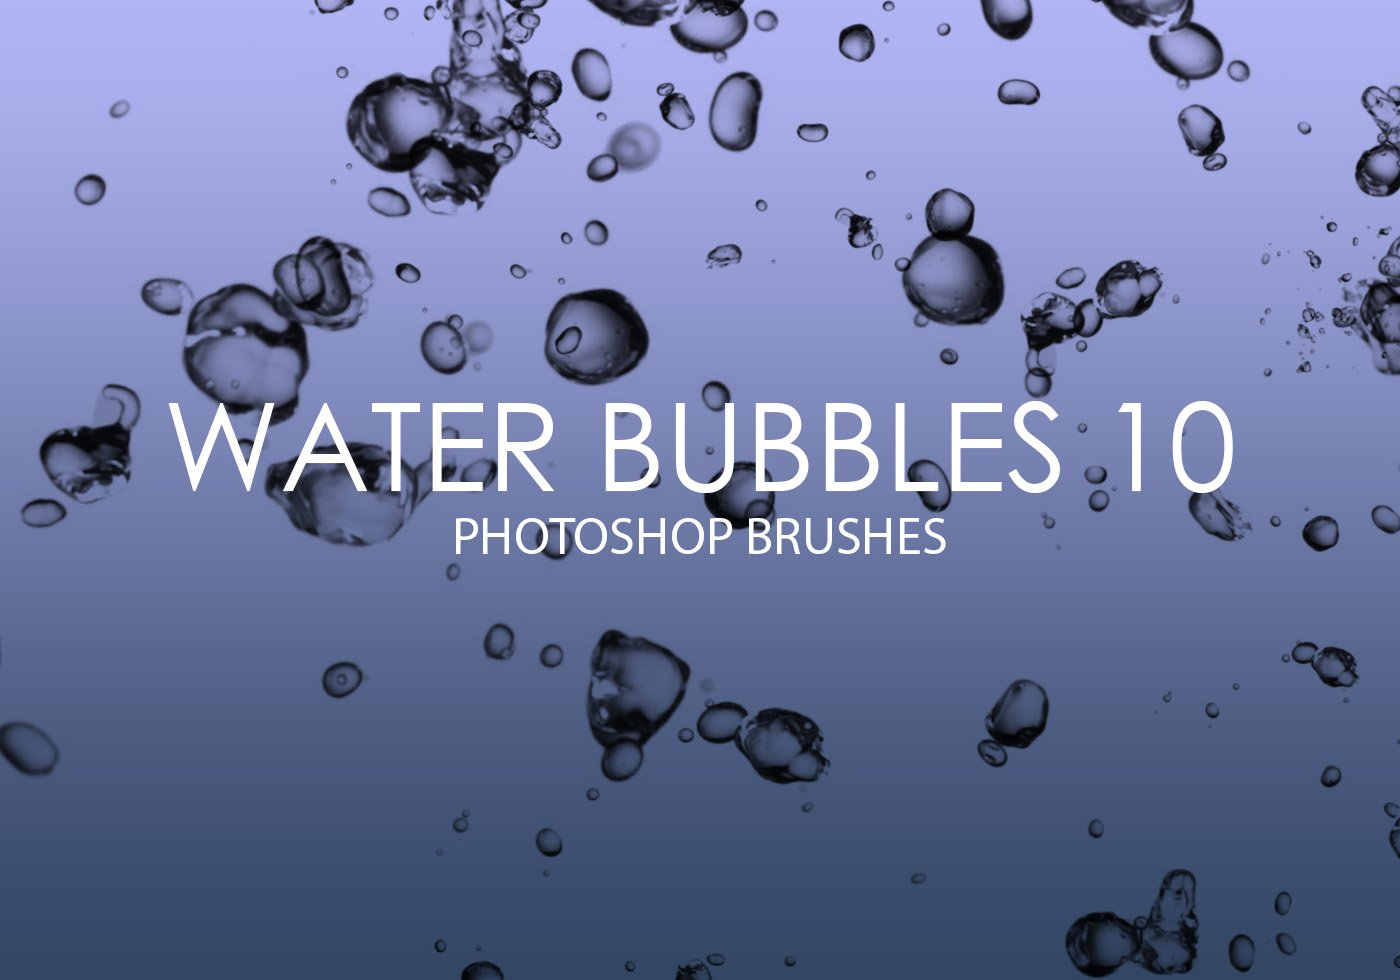 Photoshop Software Libre Free Water Bubbles Pinceles Para Photoshop 10 Pinceles